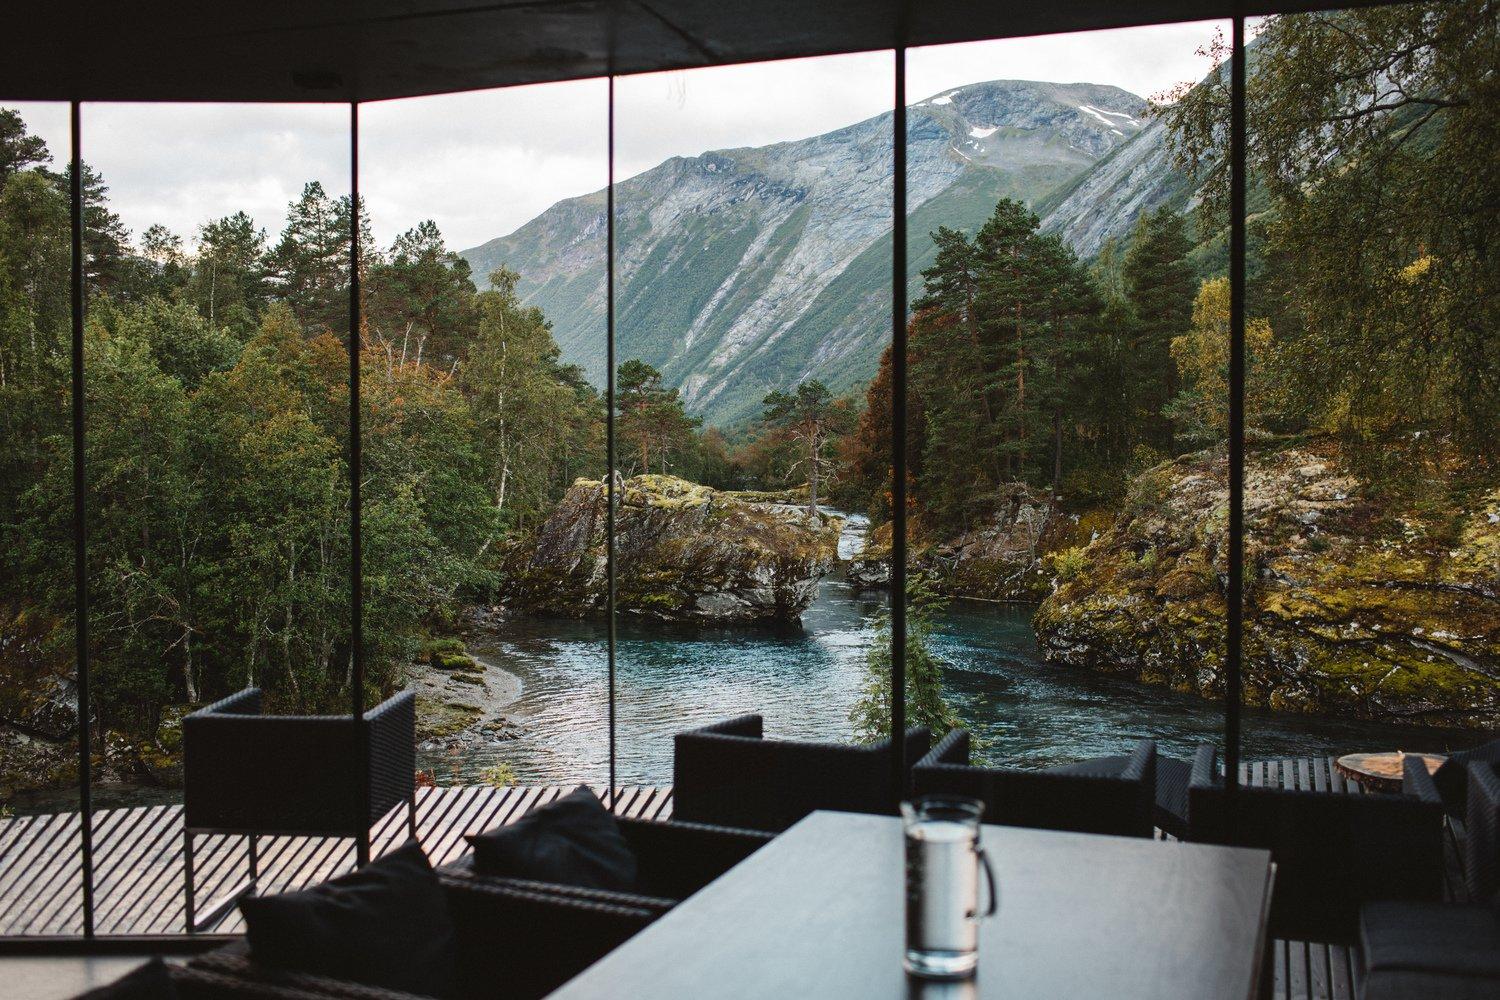 Views from Juvet (Ex-Machina) Landscape Hotel